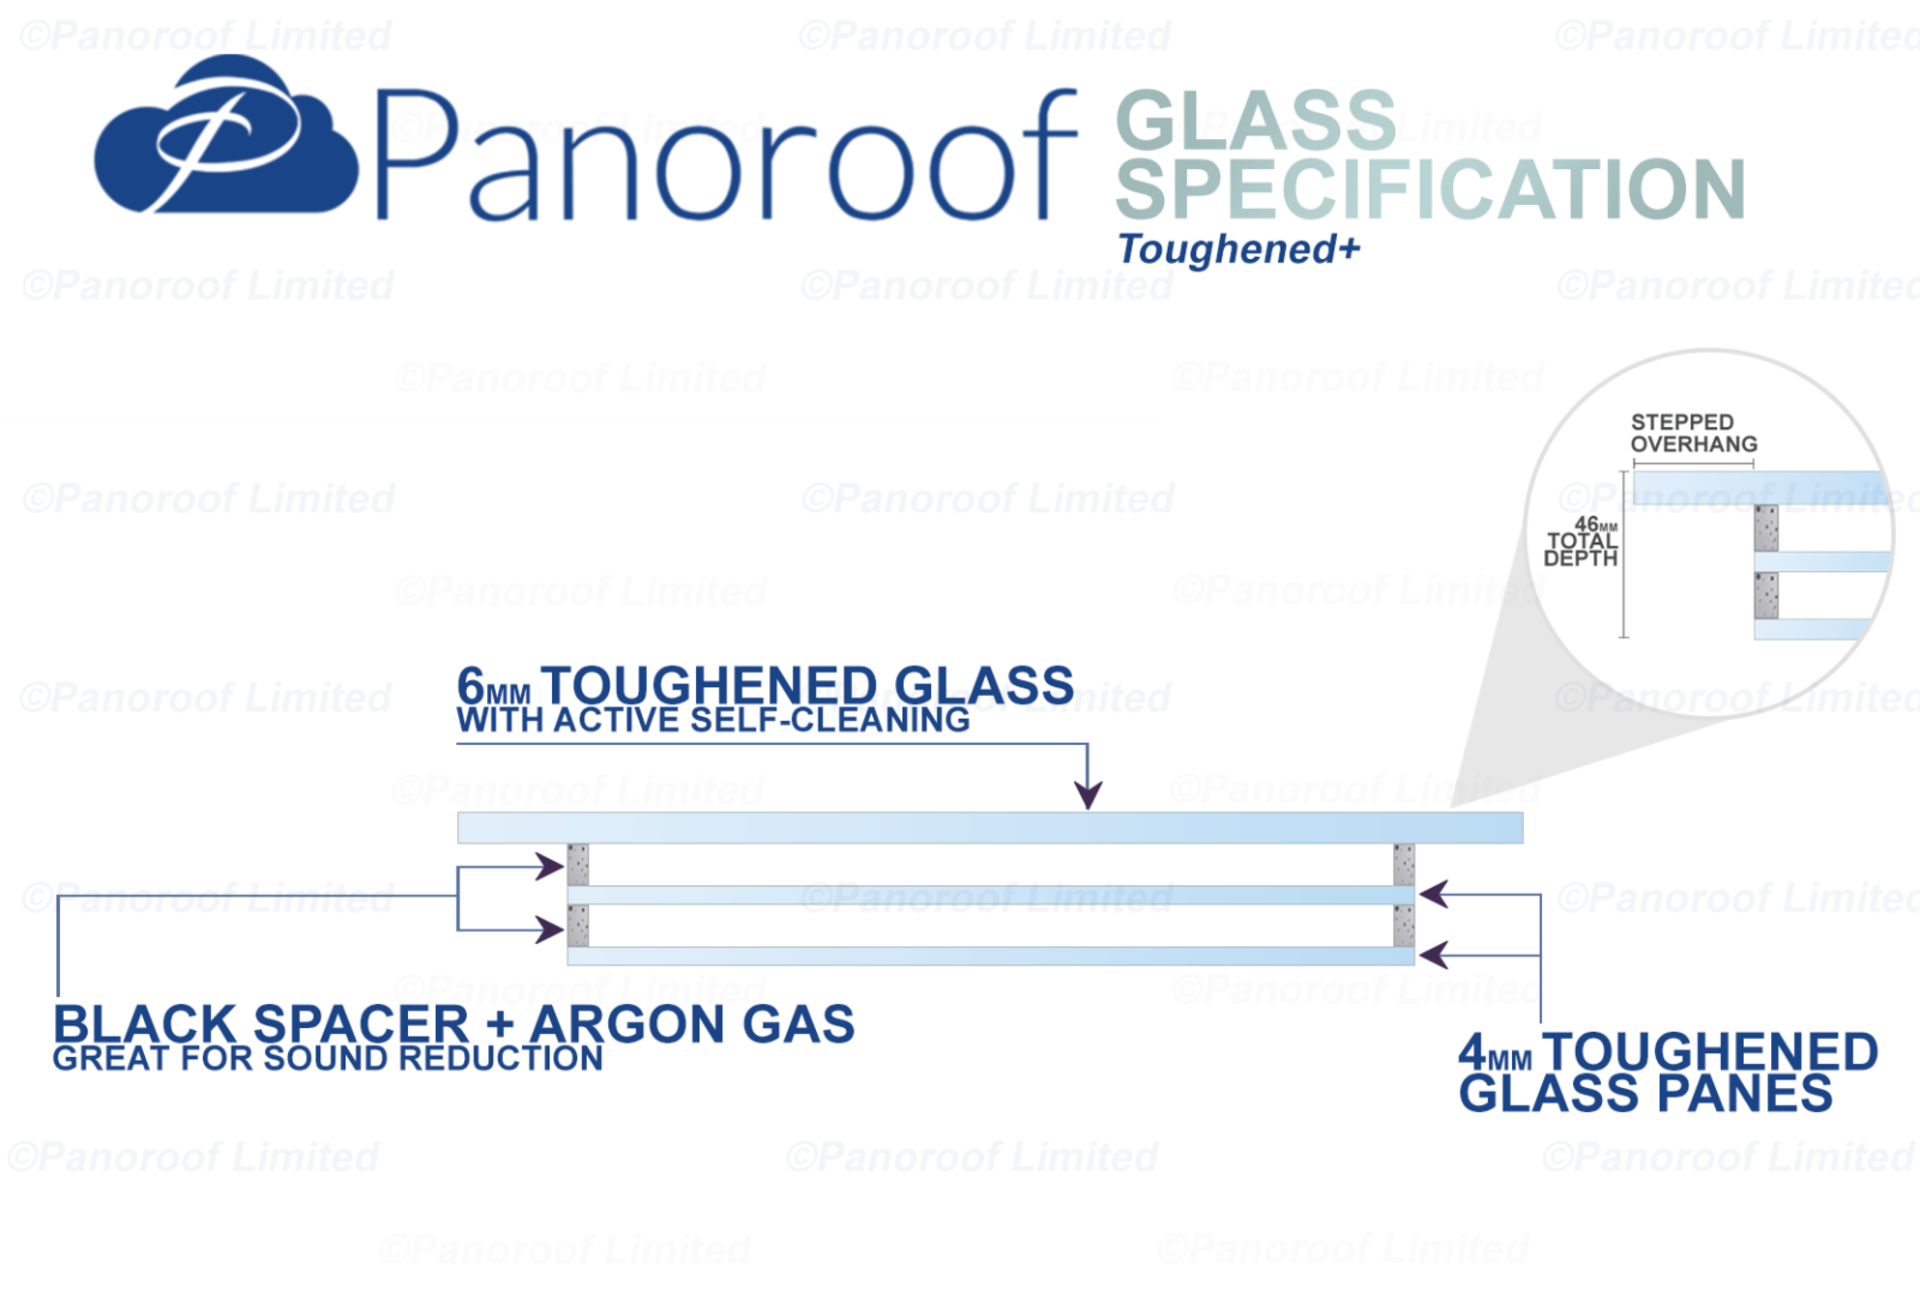 """""""Panoroof Triple Glazed Self Cleaning , 400x1500mm (inside Size Visable glass area) Seamless Glass - Image 5 of 6"""